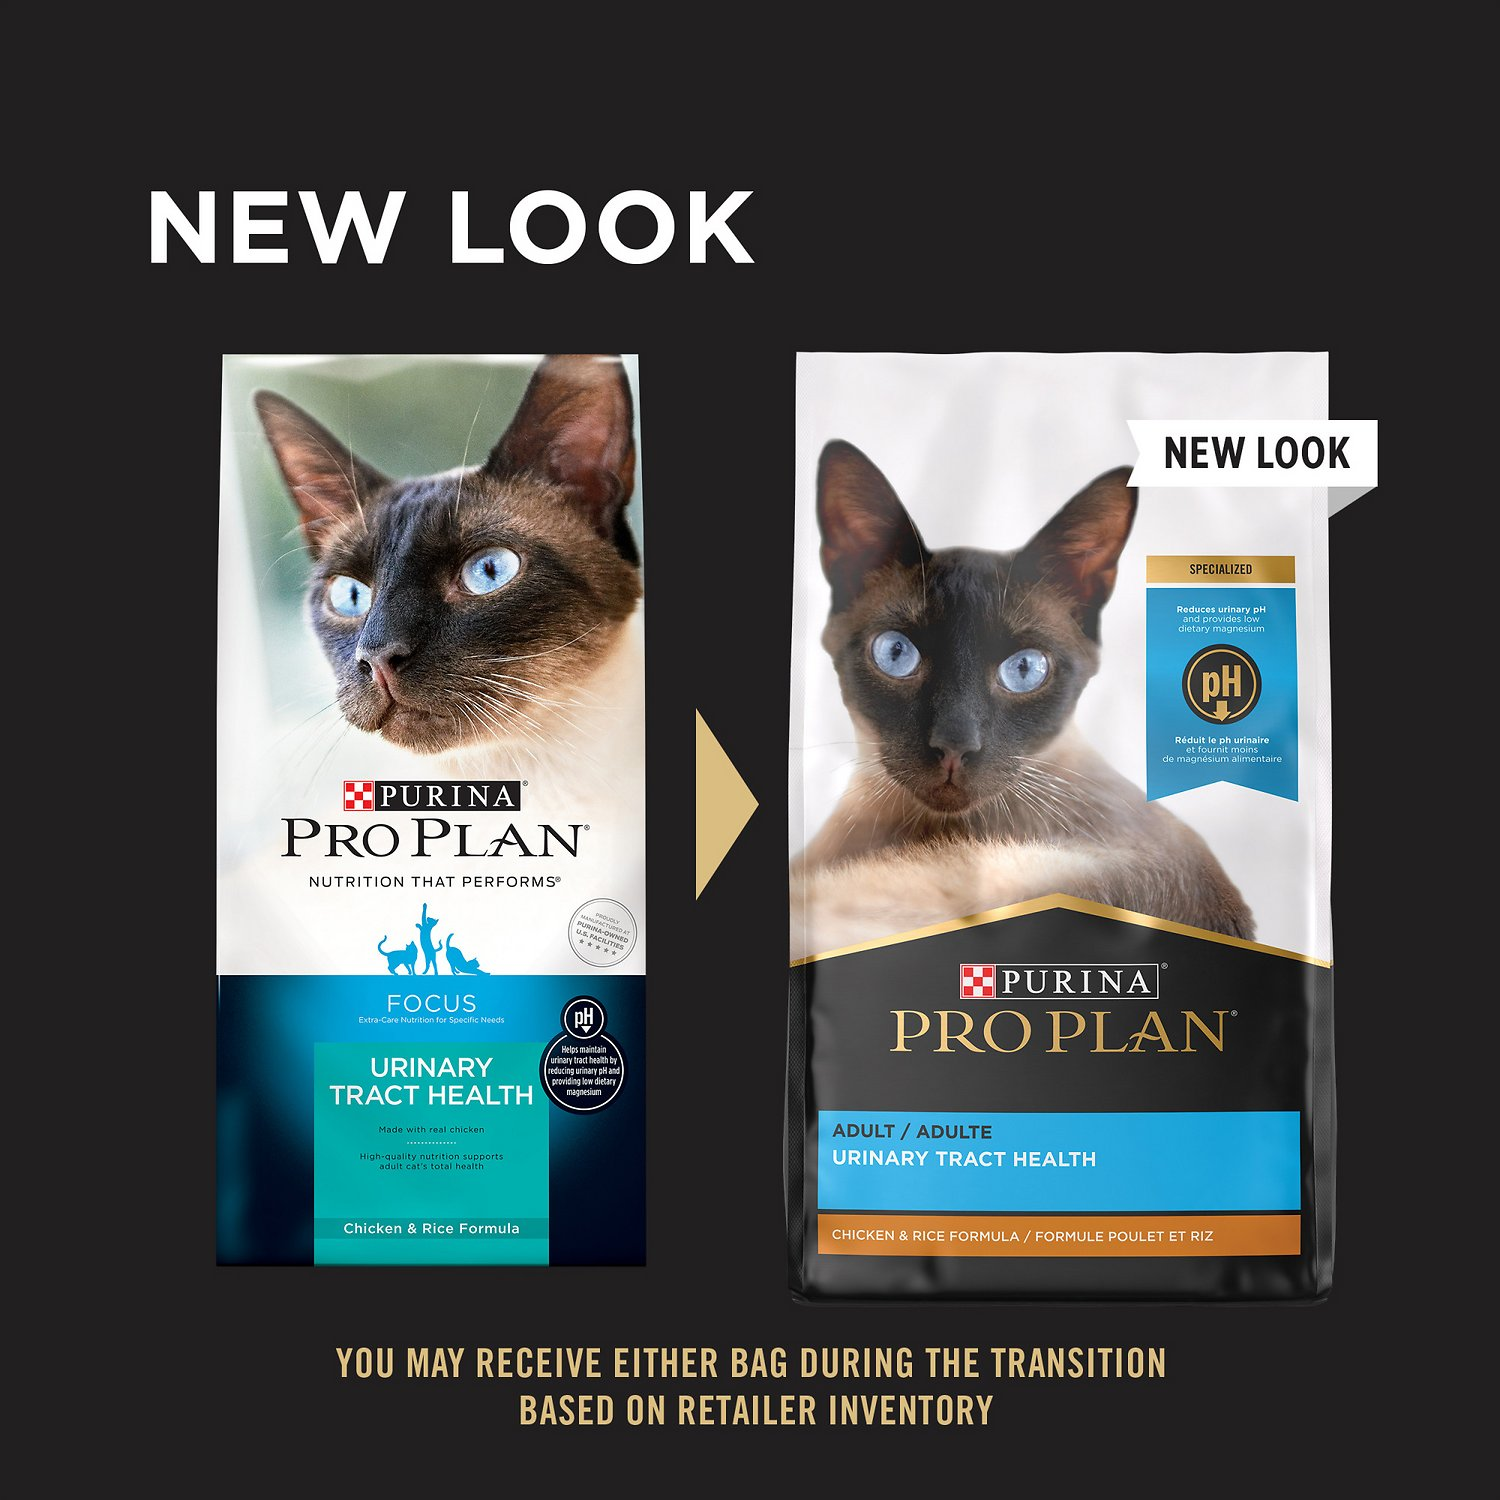 Purina Pro Plan Cat Food >> Purina Pro Plan Focus Adult Urinary Tract Health Formula Dry Cat Food, 3.5-lb bag - Chewy.com